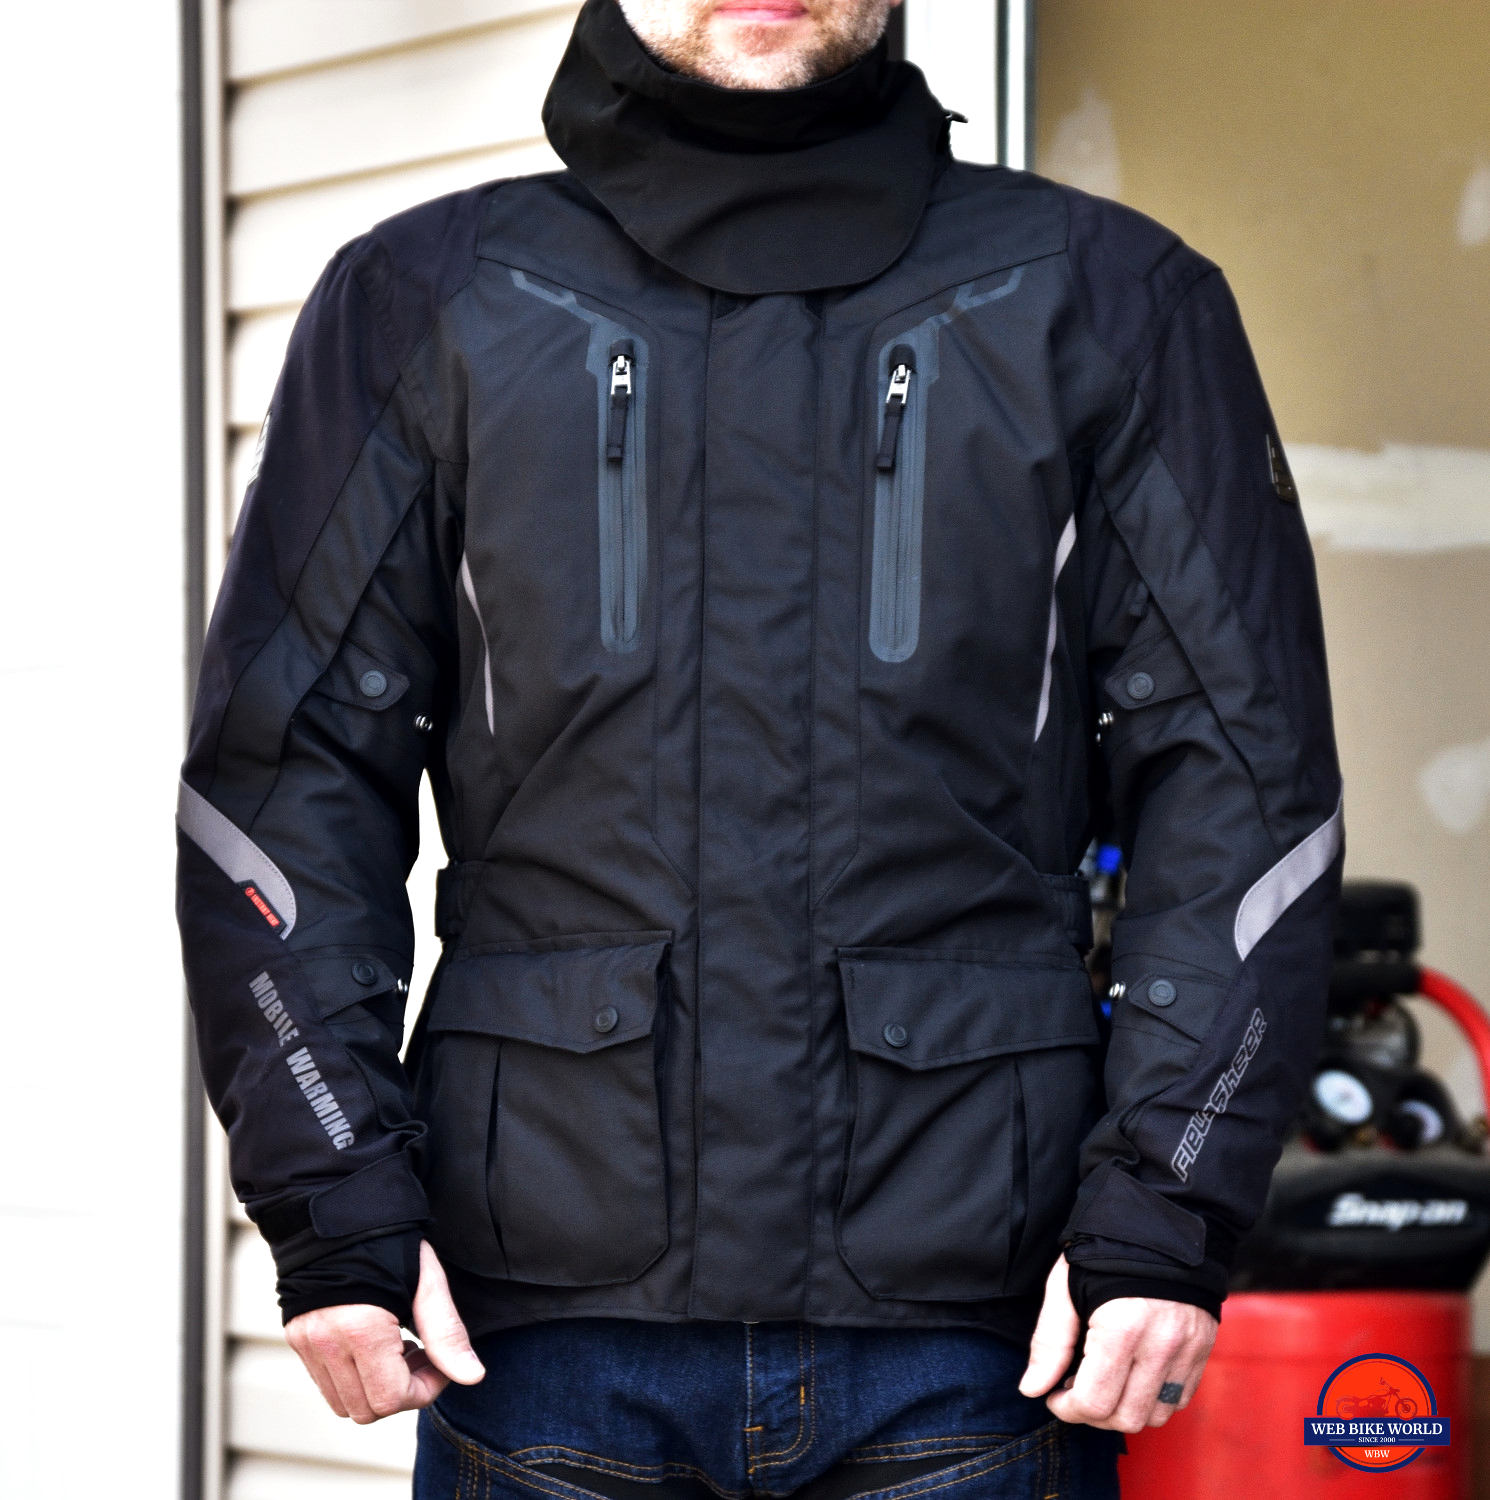 Fieldsheer Hydro Heat Textile Jacket Full Frontal View On Model